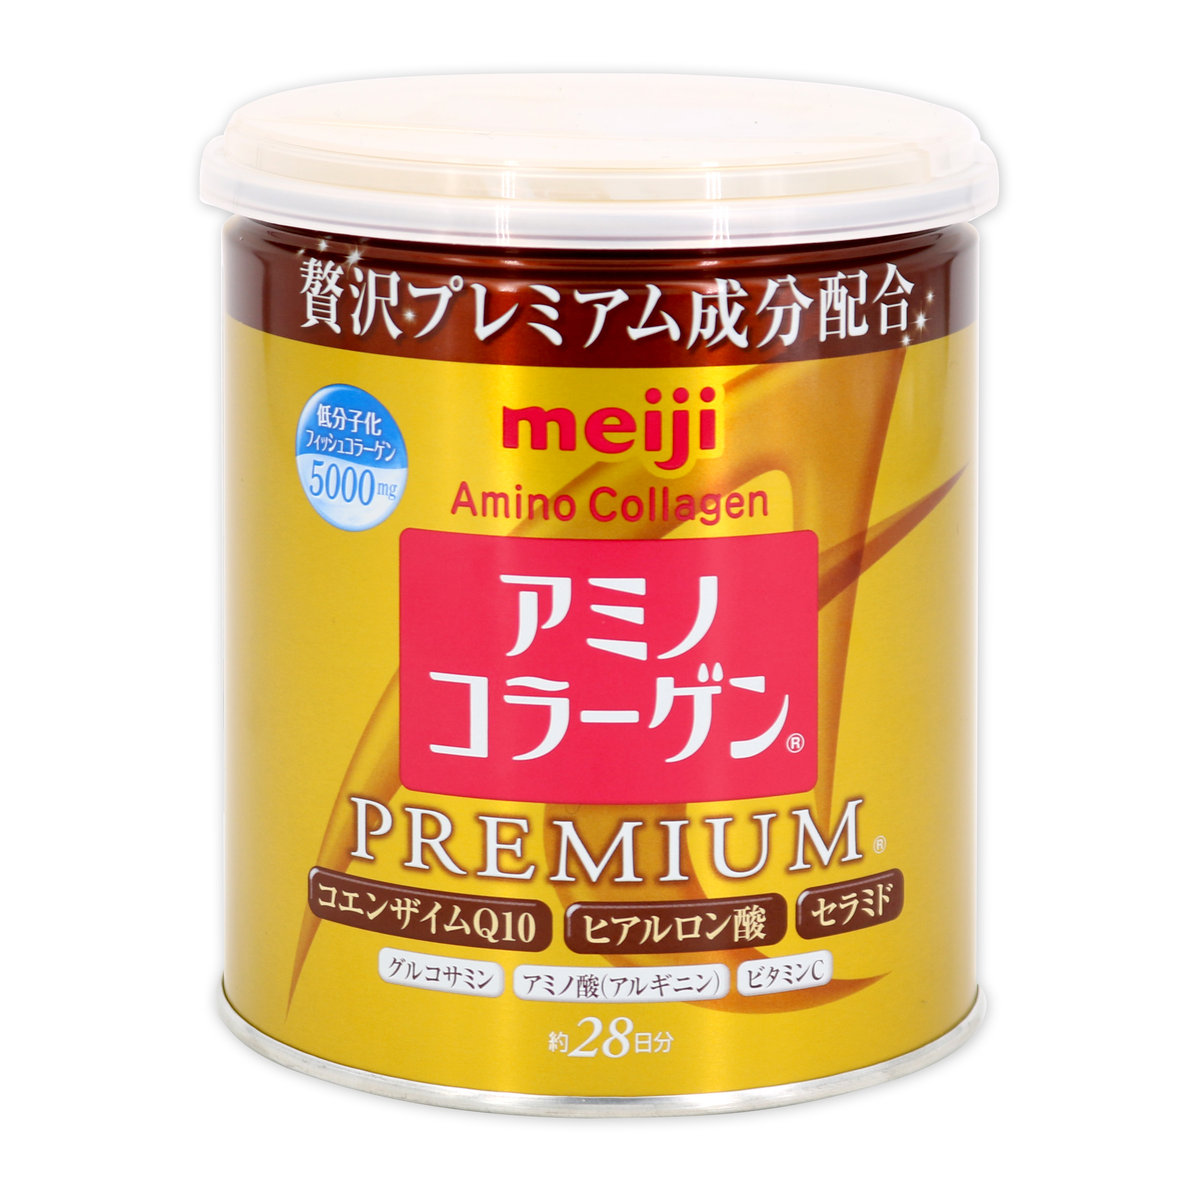 Amino Collagen (Gold)